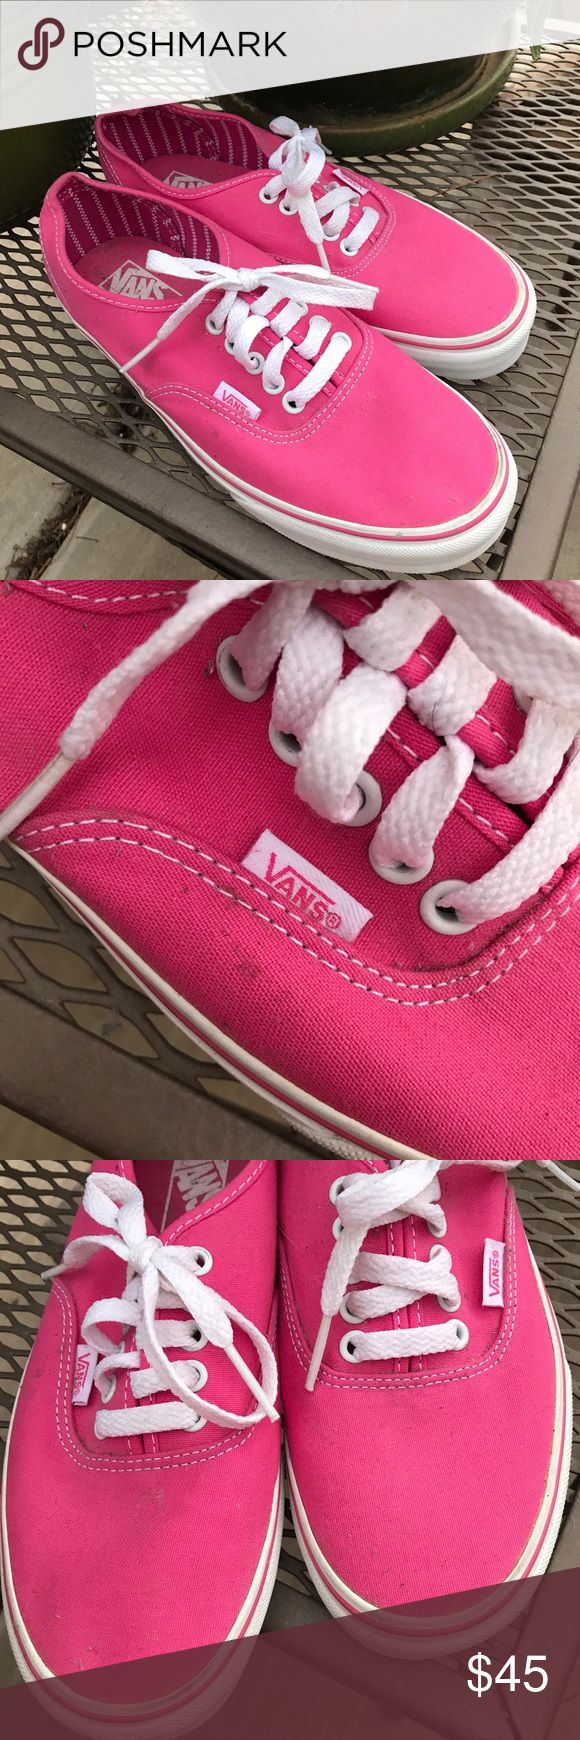 Classic Hot Pink Vans NEW These are like new. I have never worn them. However, they have gathered dust and a few small dirt marks from sitting in my shoe bin. All flaws are shown in pictures, they are minimal. I bought them but never wore because pink is a little bold for my Tom boy self. 😂 hopefully someone can give them some love 💕 open to offers, bundle to save ♥️ Vans Shoes Sneakers